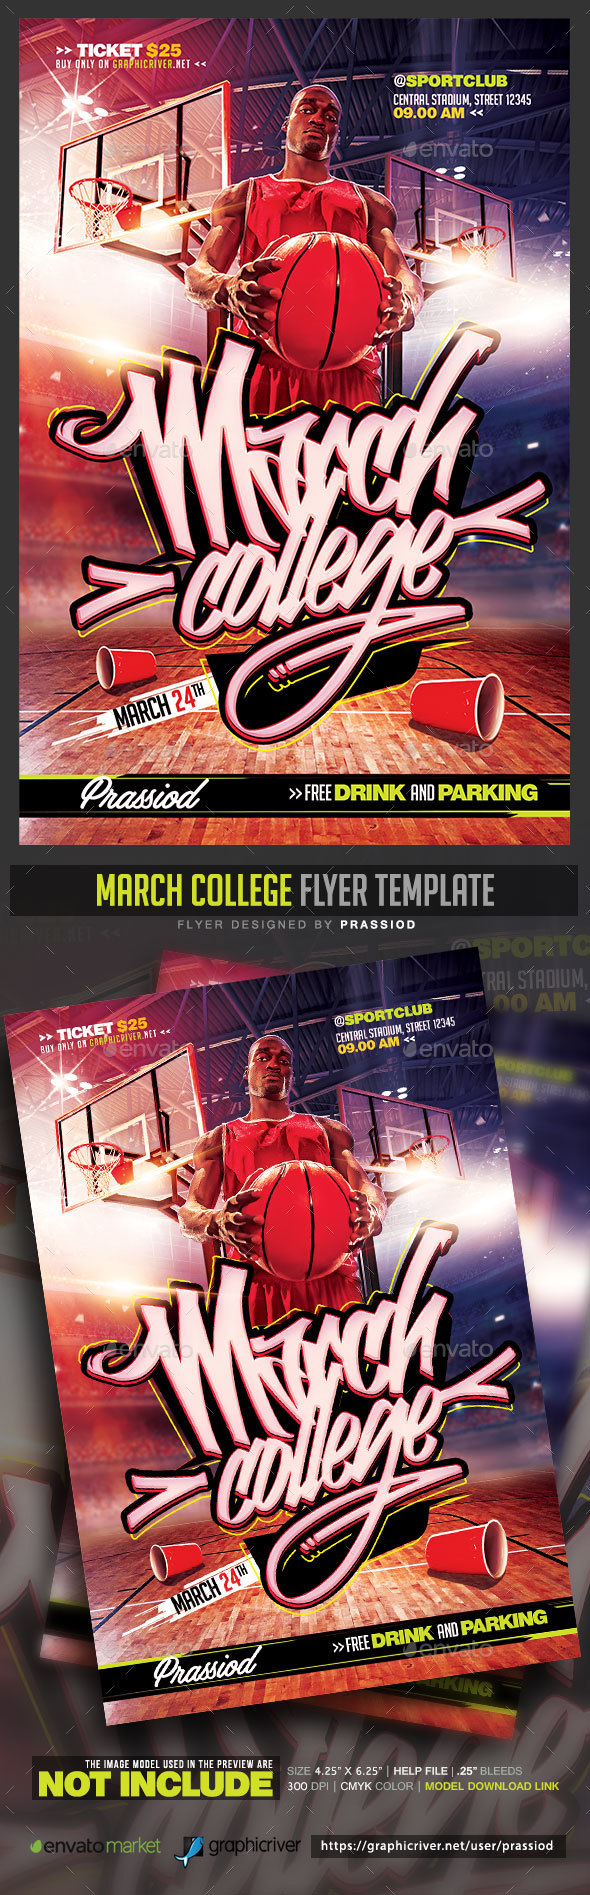 March College Flyer Template - Sports Events